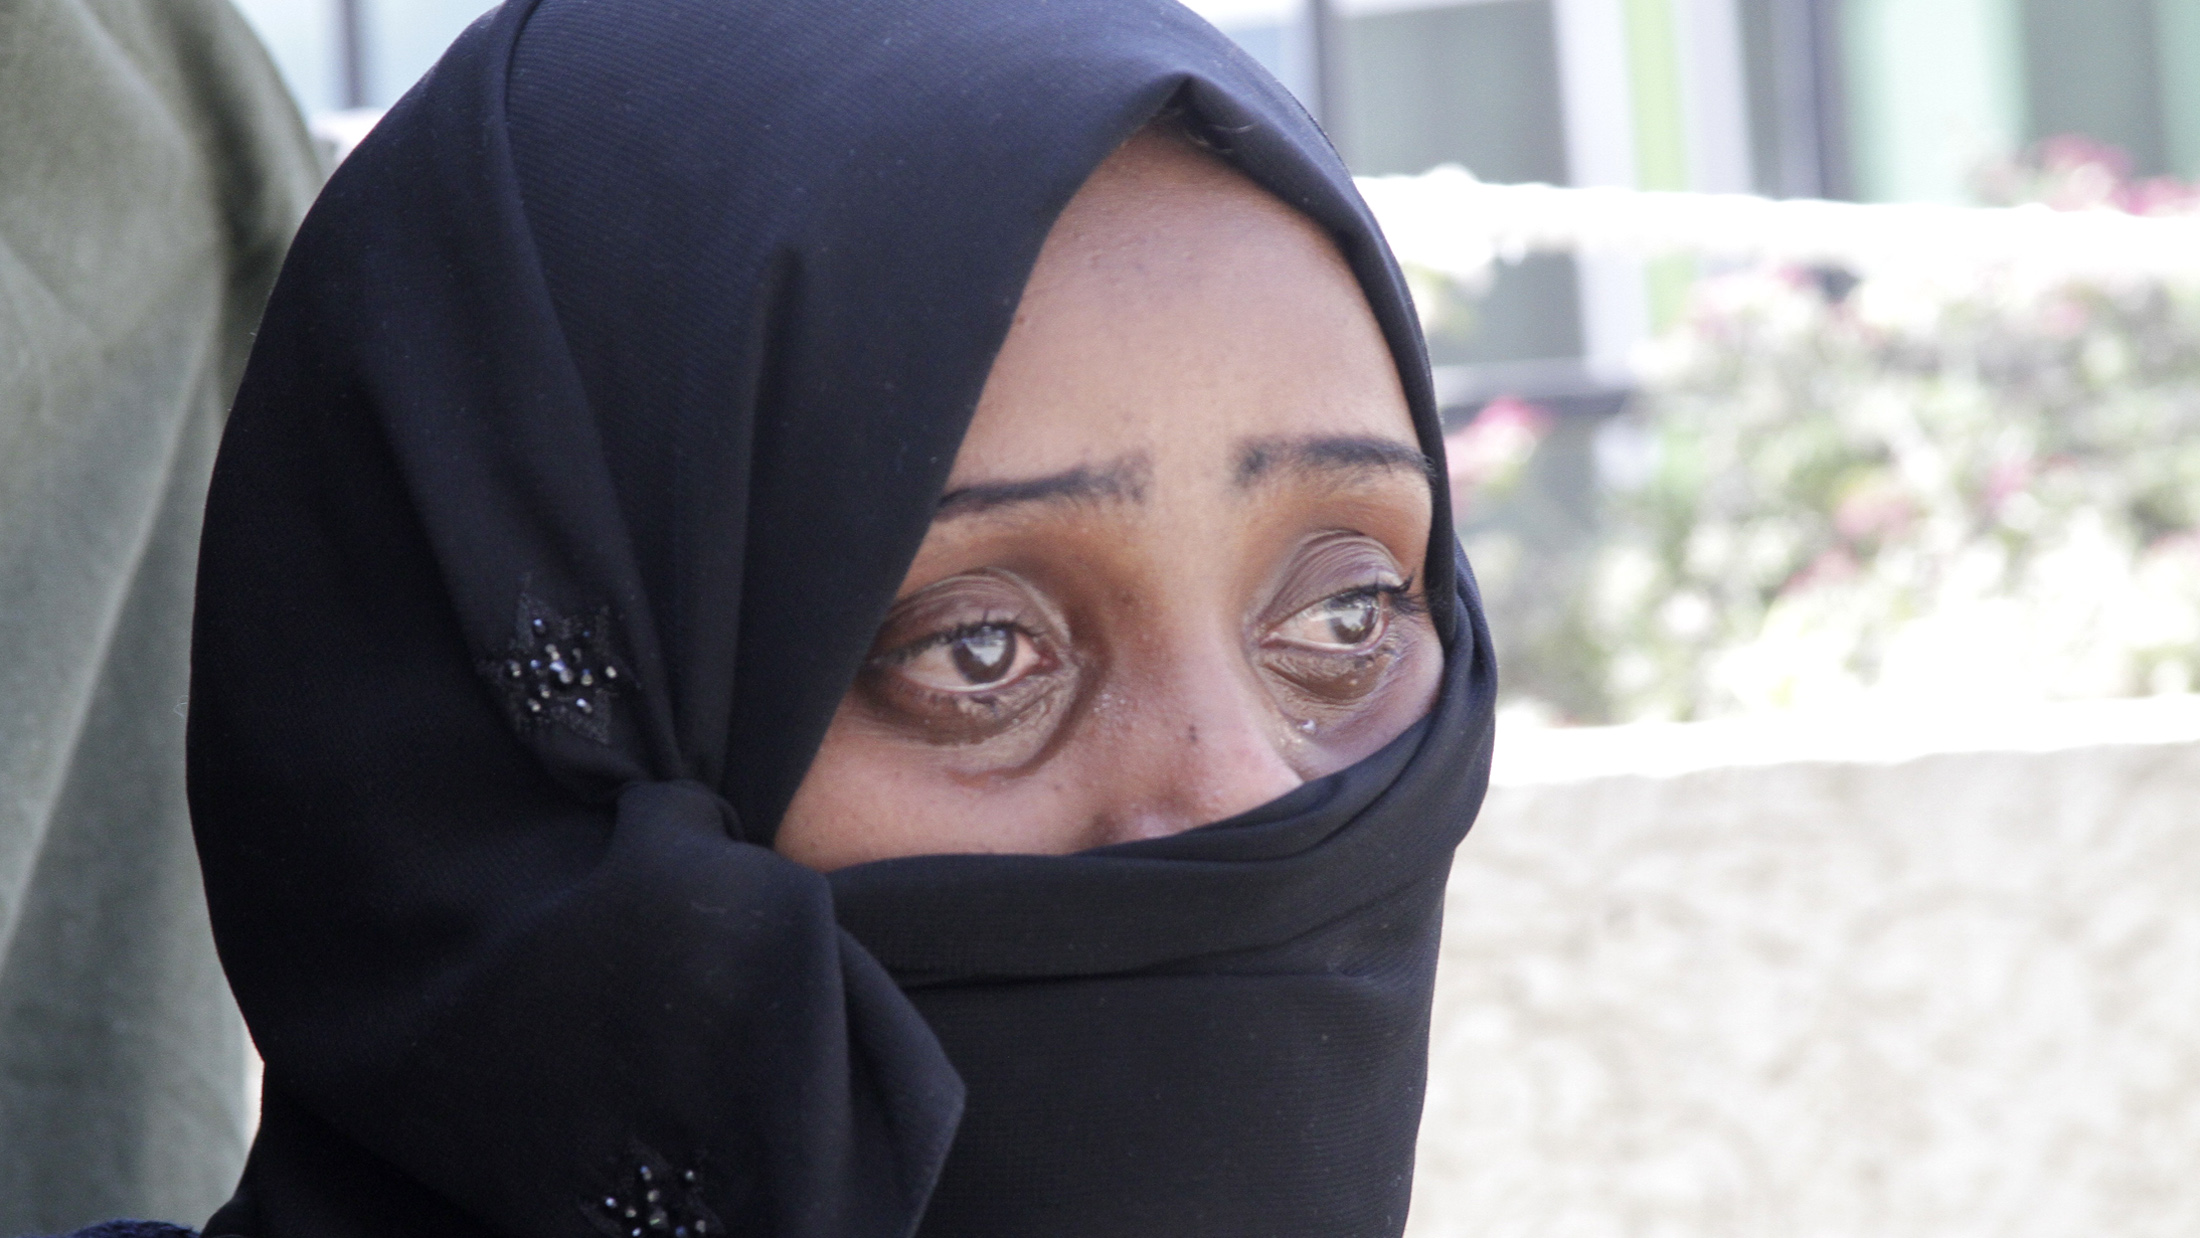 An Ethiopian migrant shortly after arriving at the airport in Addis Ababa following her arrest and detention in Saudi Arabia for working without documents